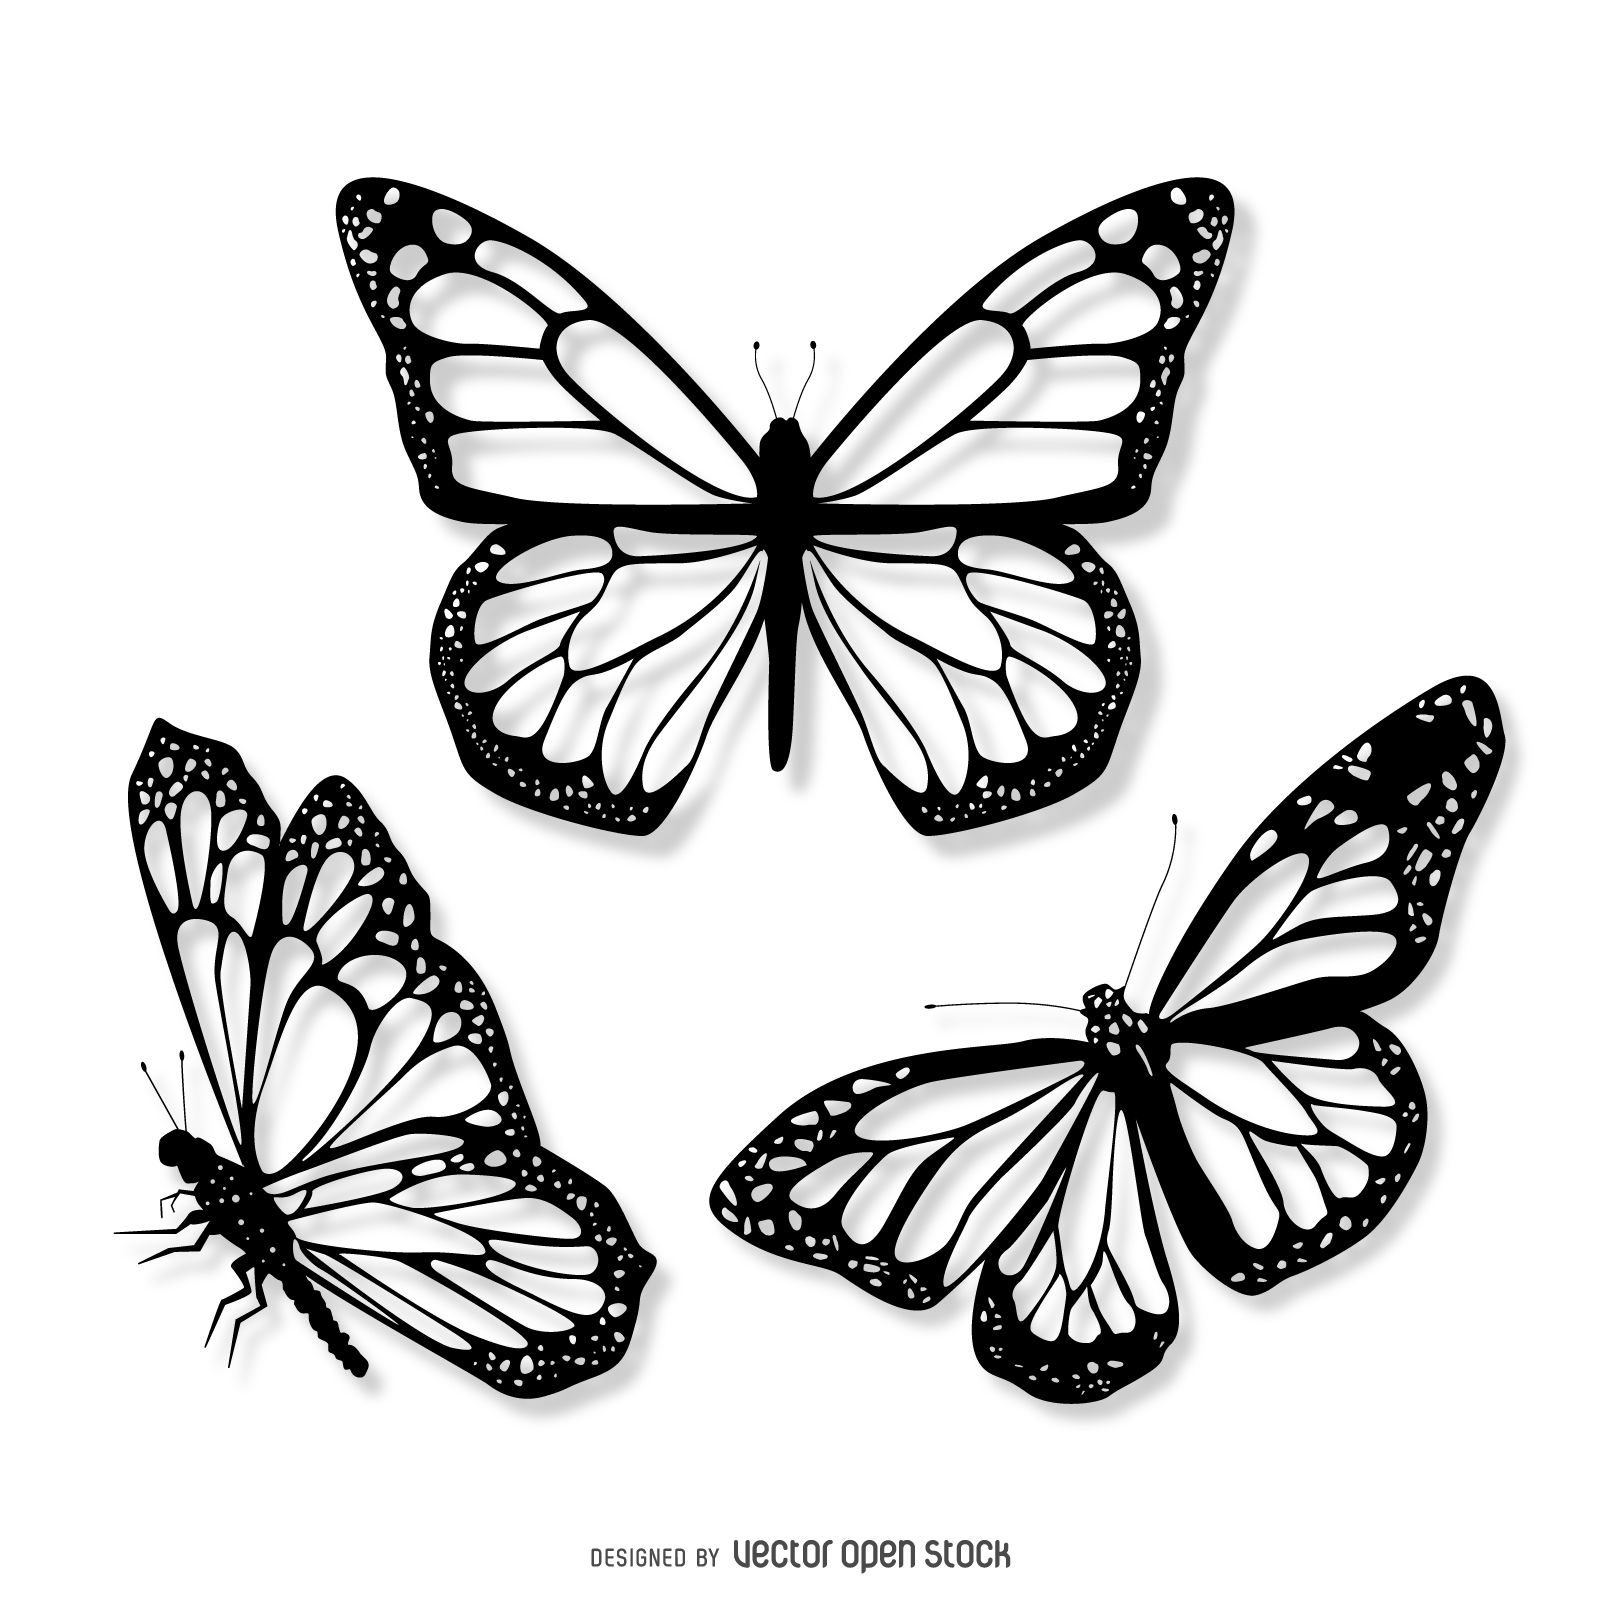 drawing monarch butterfly image result for monarch butterfly drawing butterfly monarch butterfly drawing